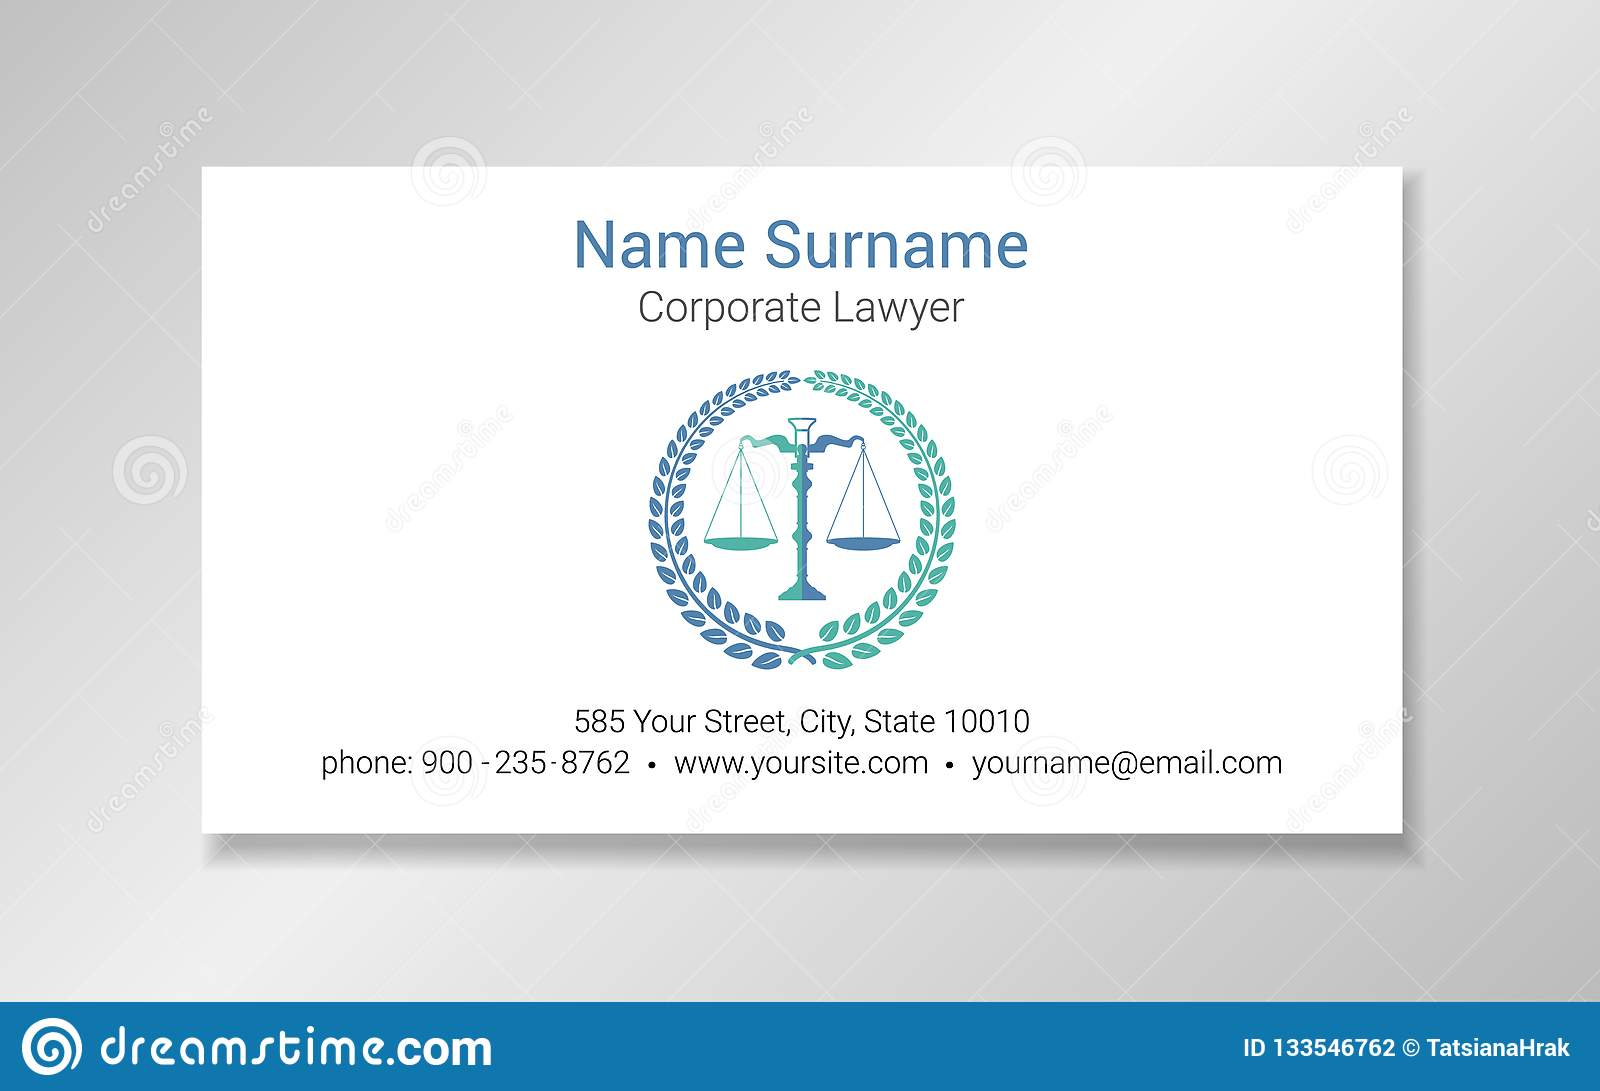 Lawyer Business Card Design Template Stock Vector Illustration Of